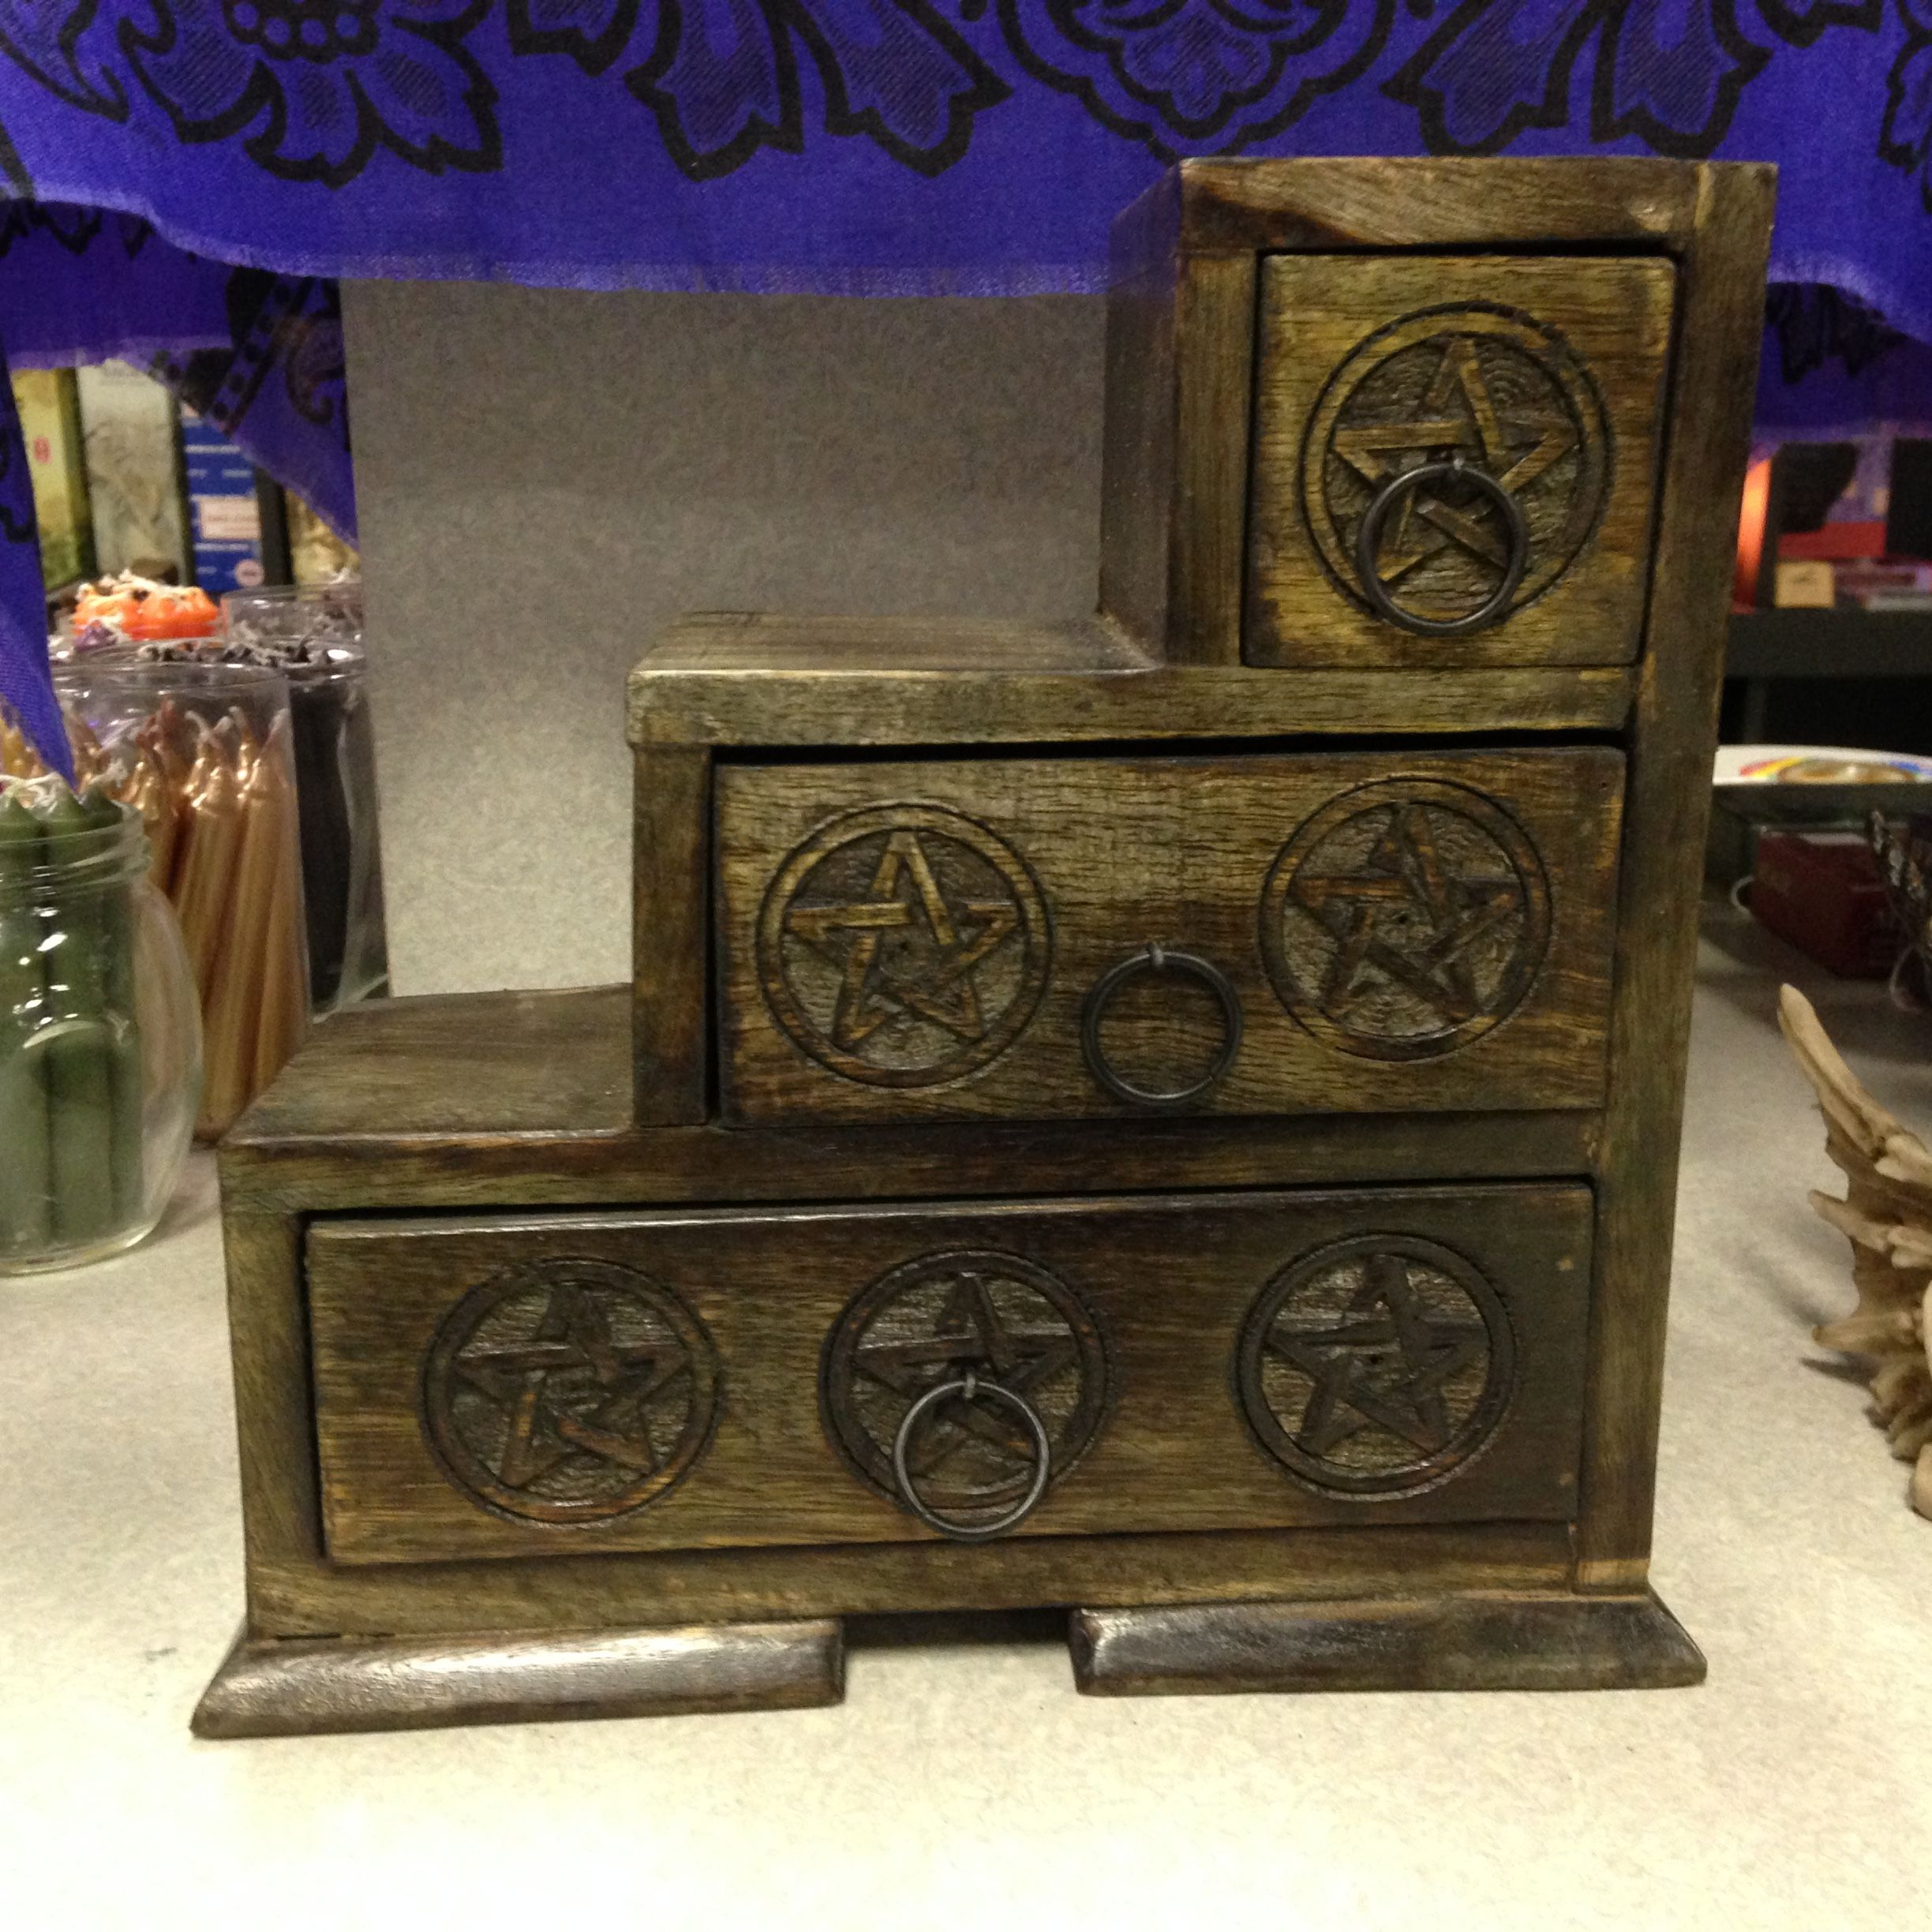 Wooden Pentagram Storage Box Available At Charmed In Lynchburg, VA (4343)  610